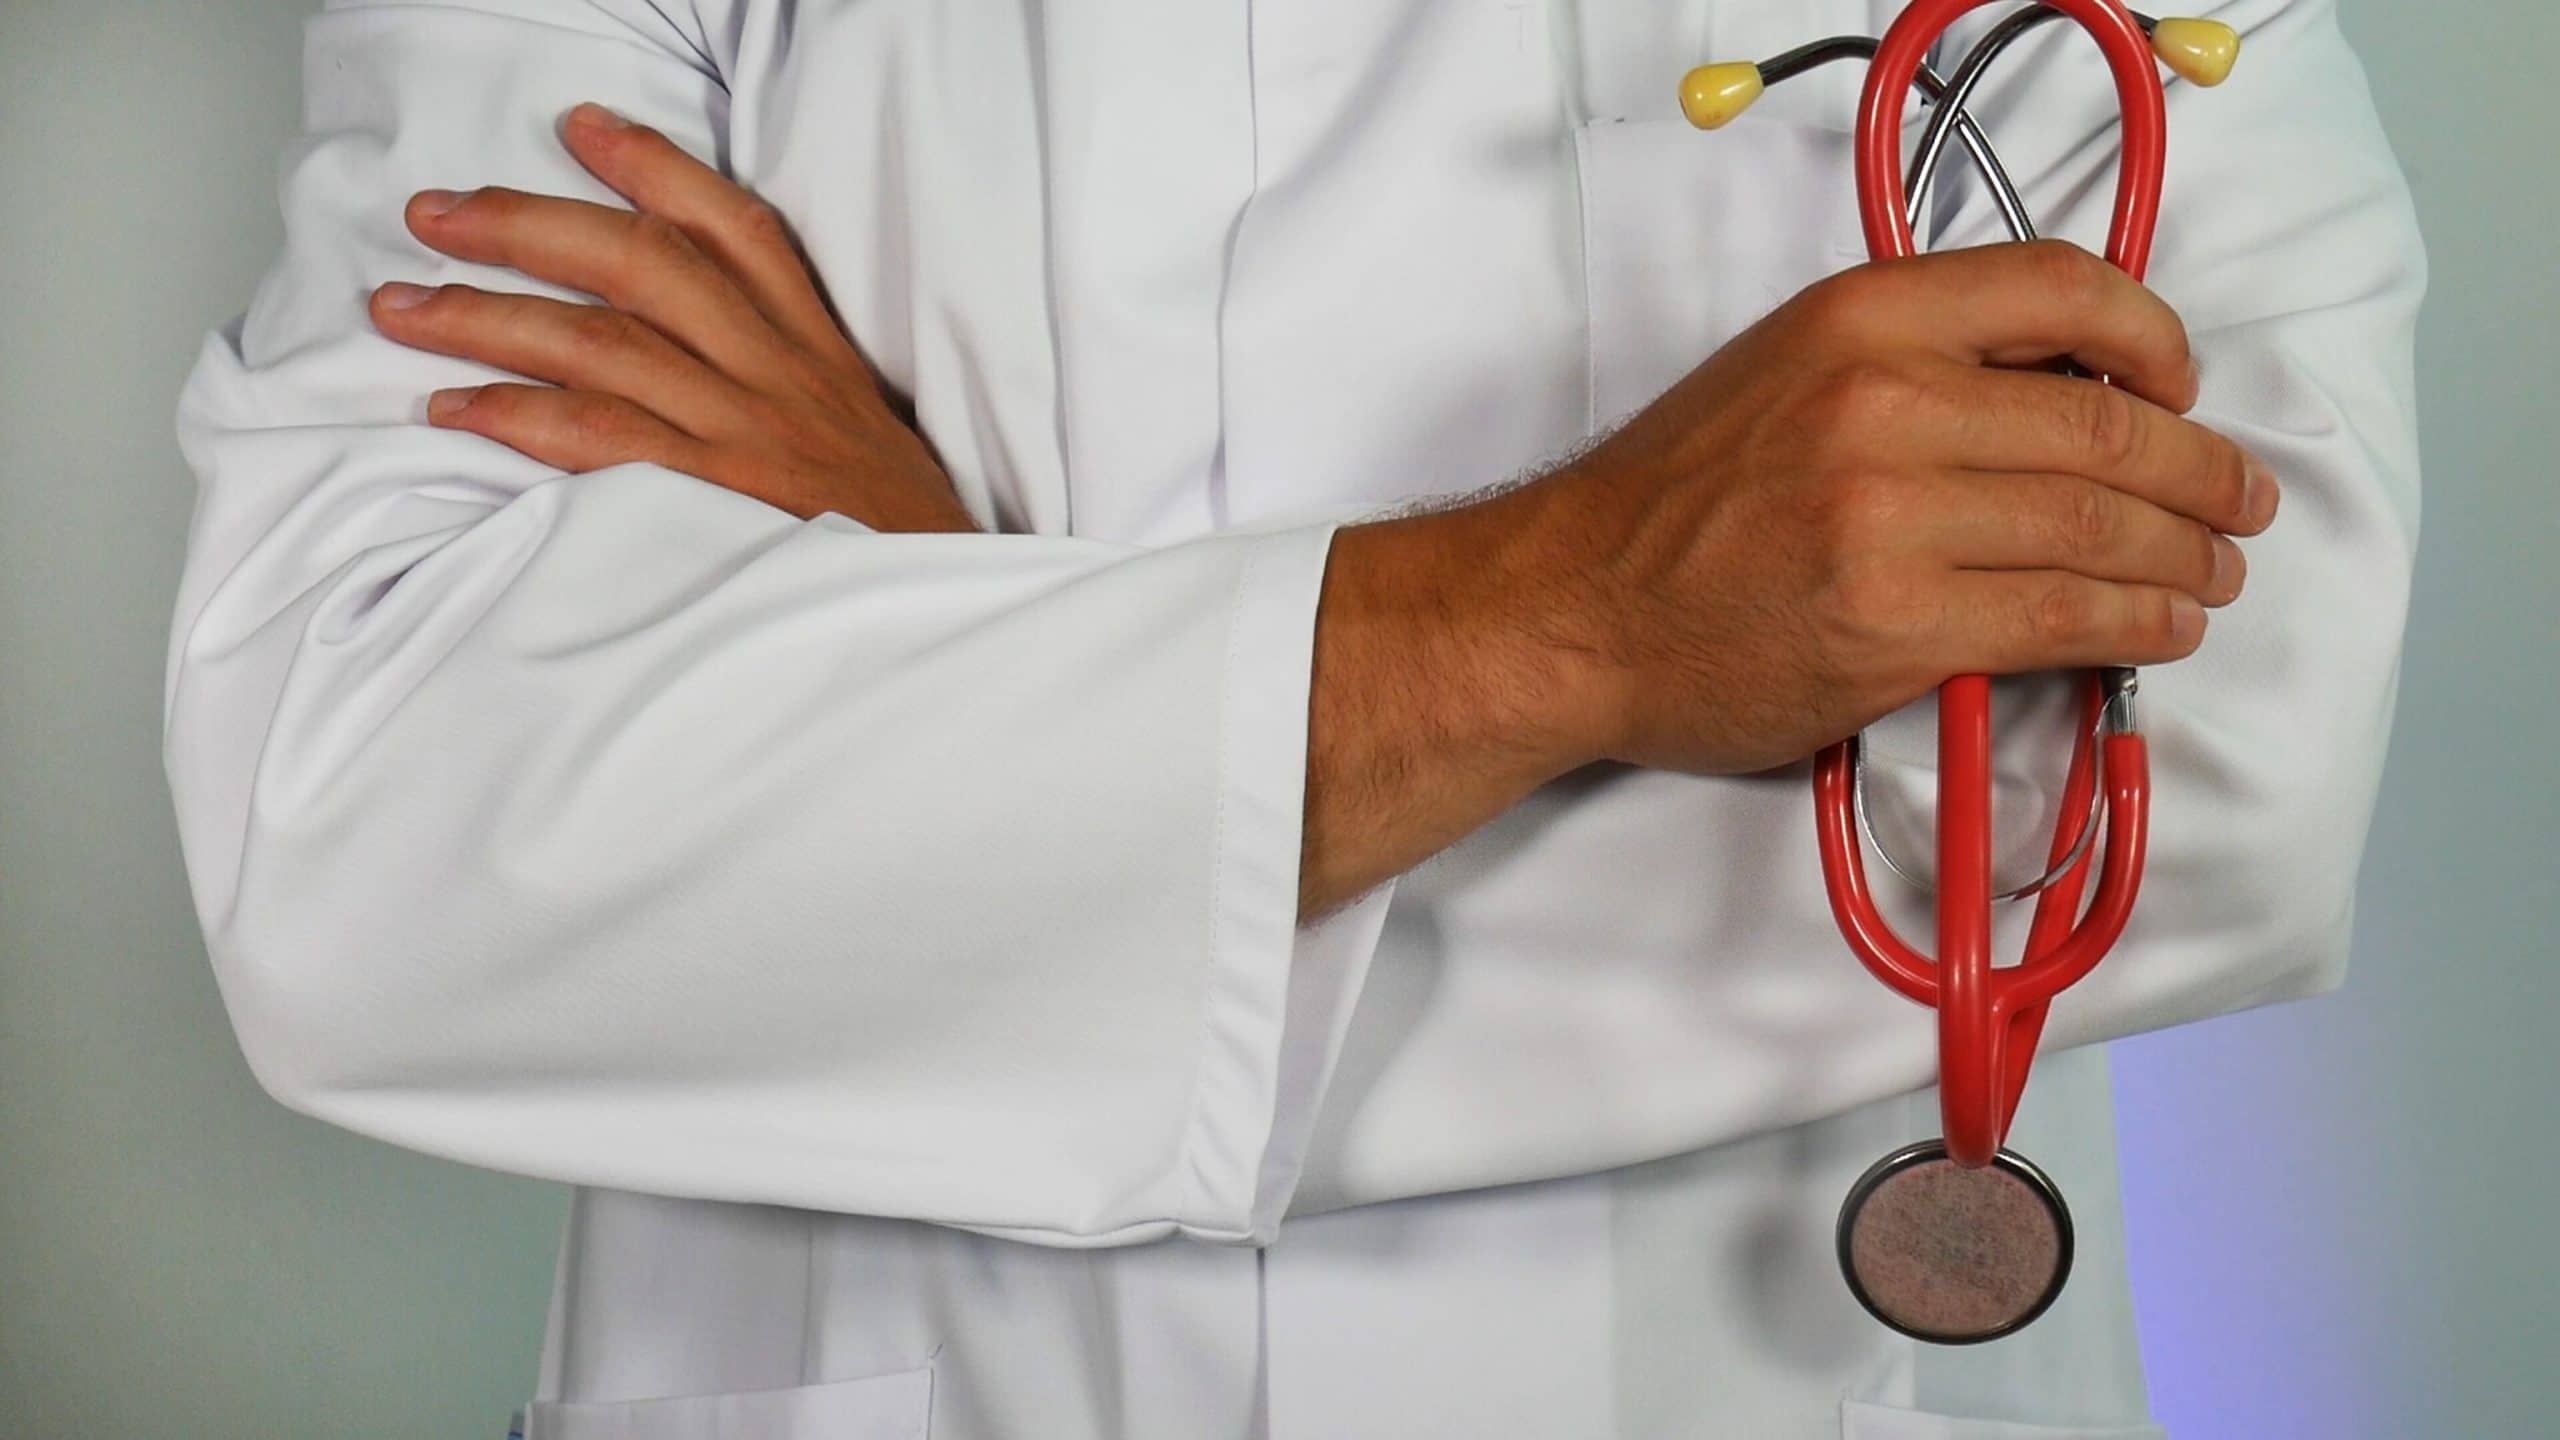 A man in a white coat holding a stethoscope